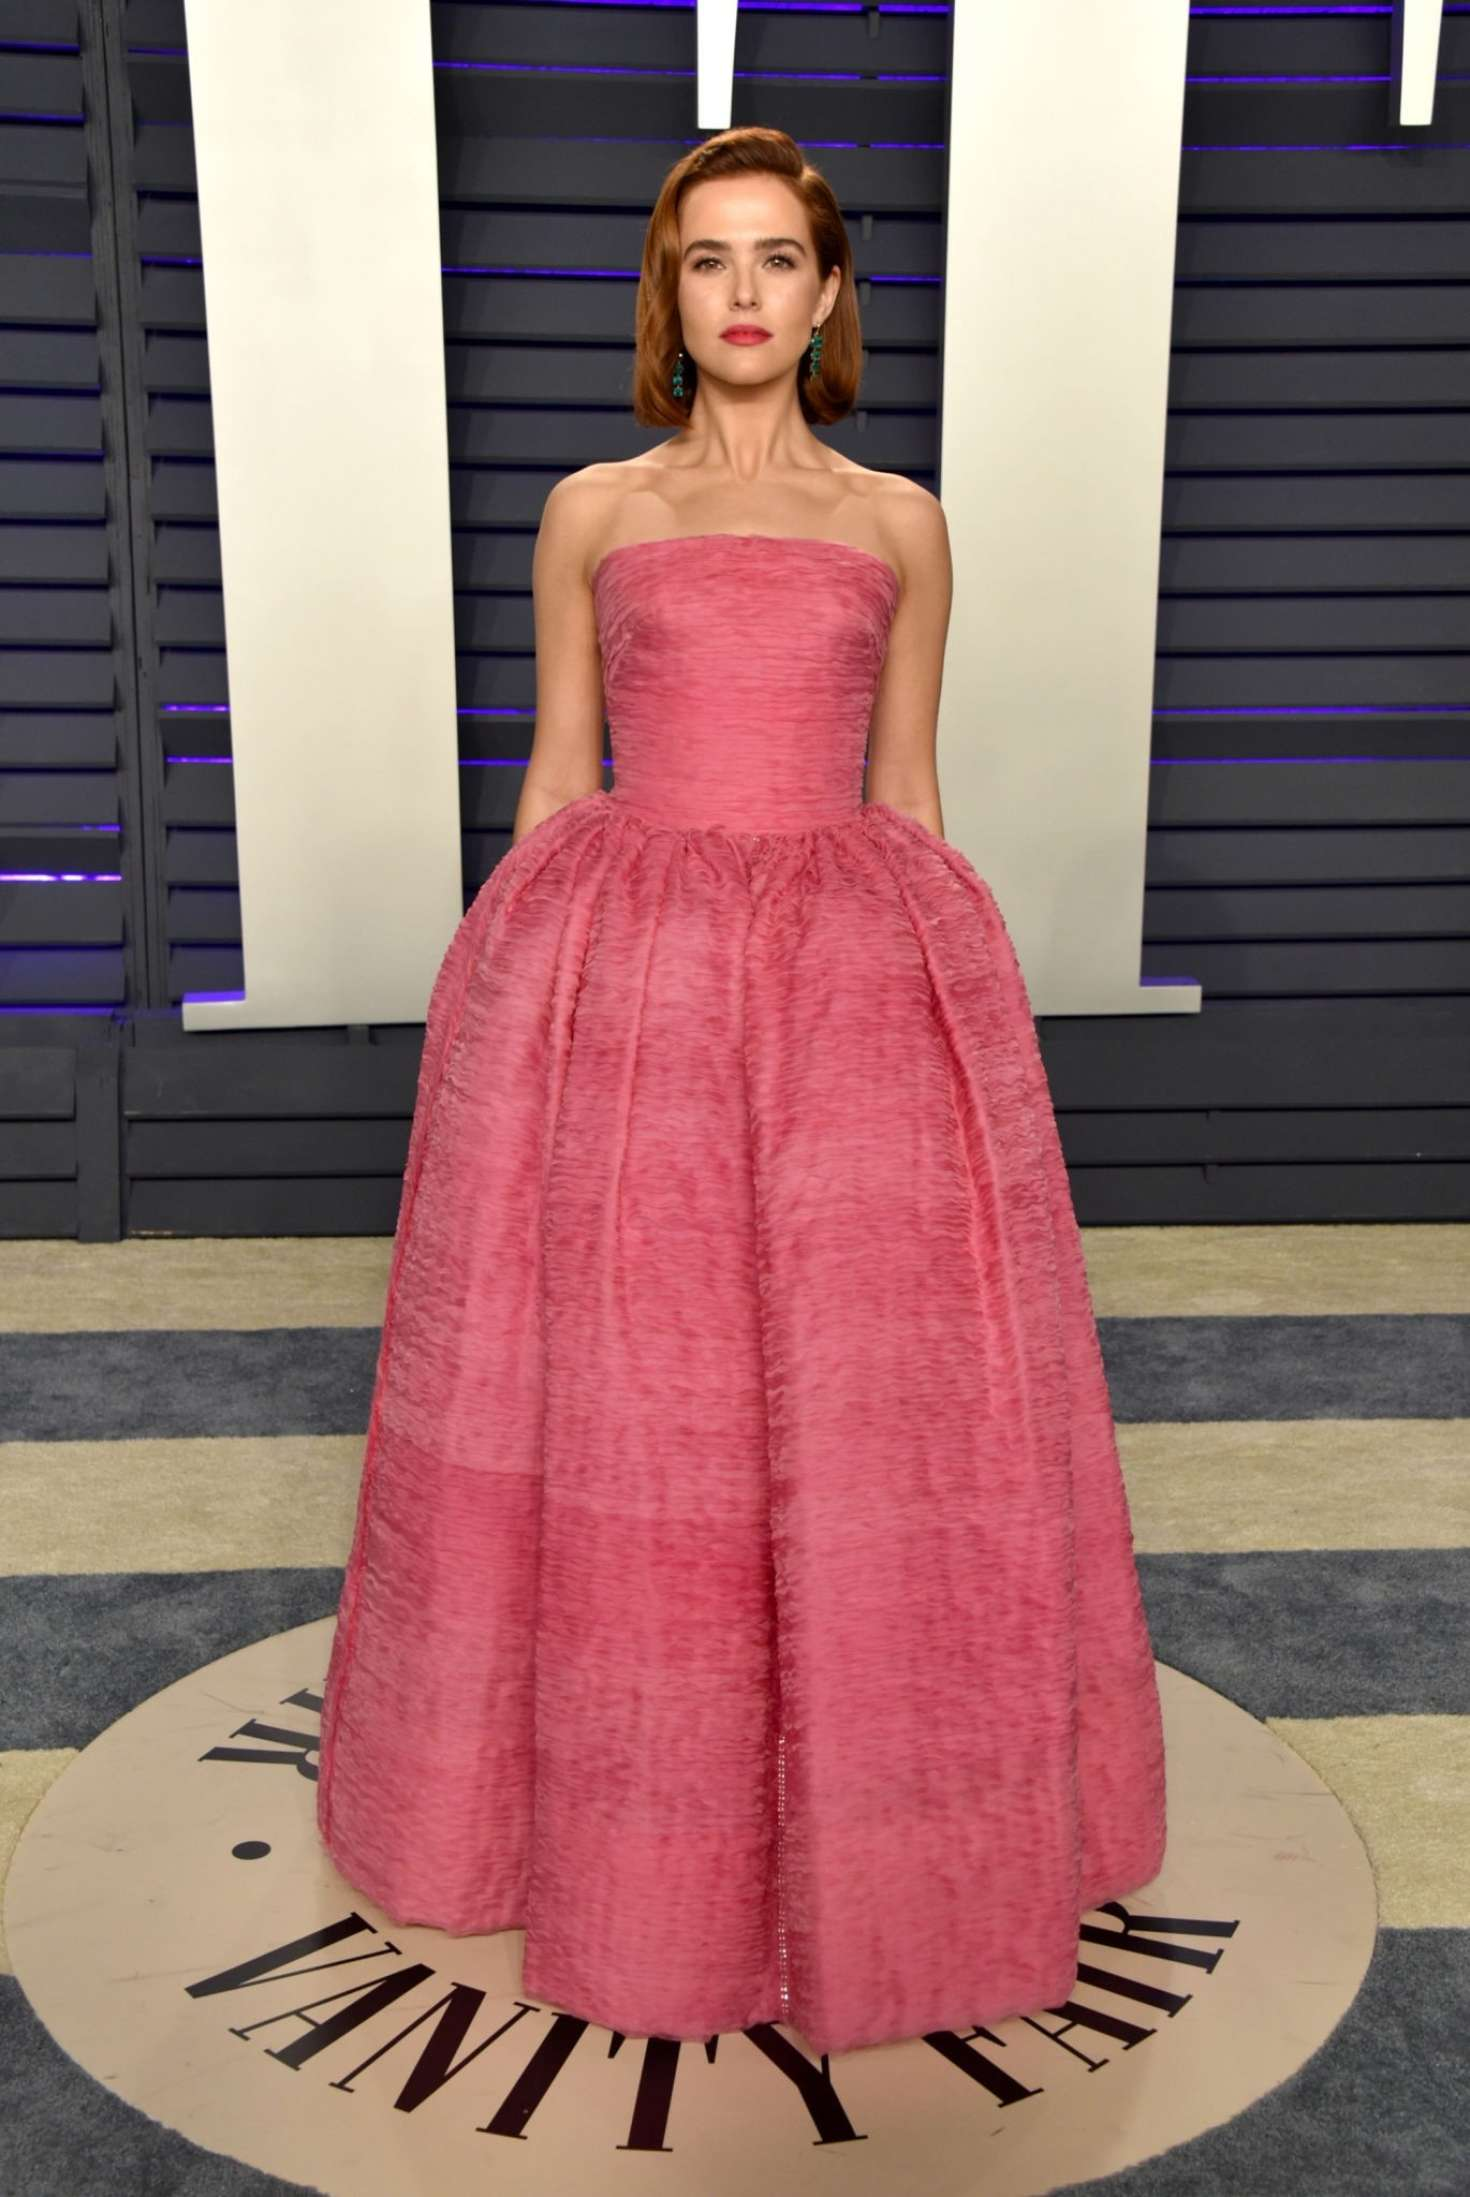 Zoey Deutch 2019 : Zoey Deutch: 2019 Vanity Fair Oscar Party -03